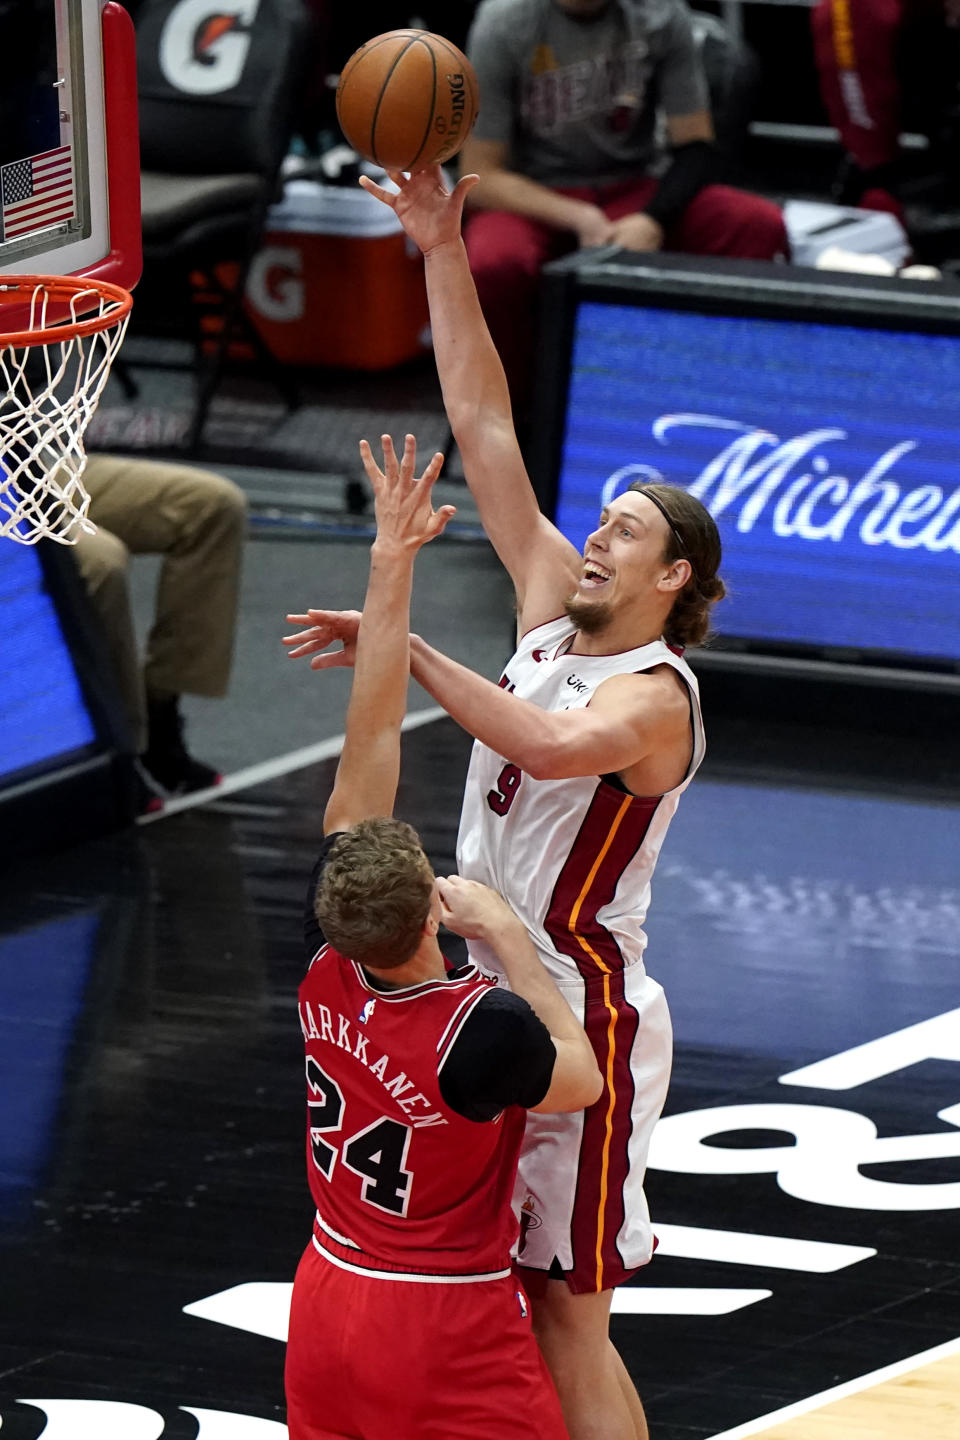 Miami Heat forward Kelly Olynyk, right, goes up to shoot against Chicago Bulls forward Lauri Markkanen during the first half of an NBA basketball game in Chicago, Friday, March 12, 2021. (AP Photo/Nam Y. Huh)